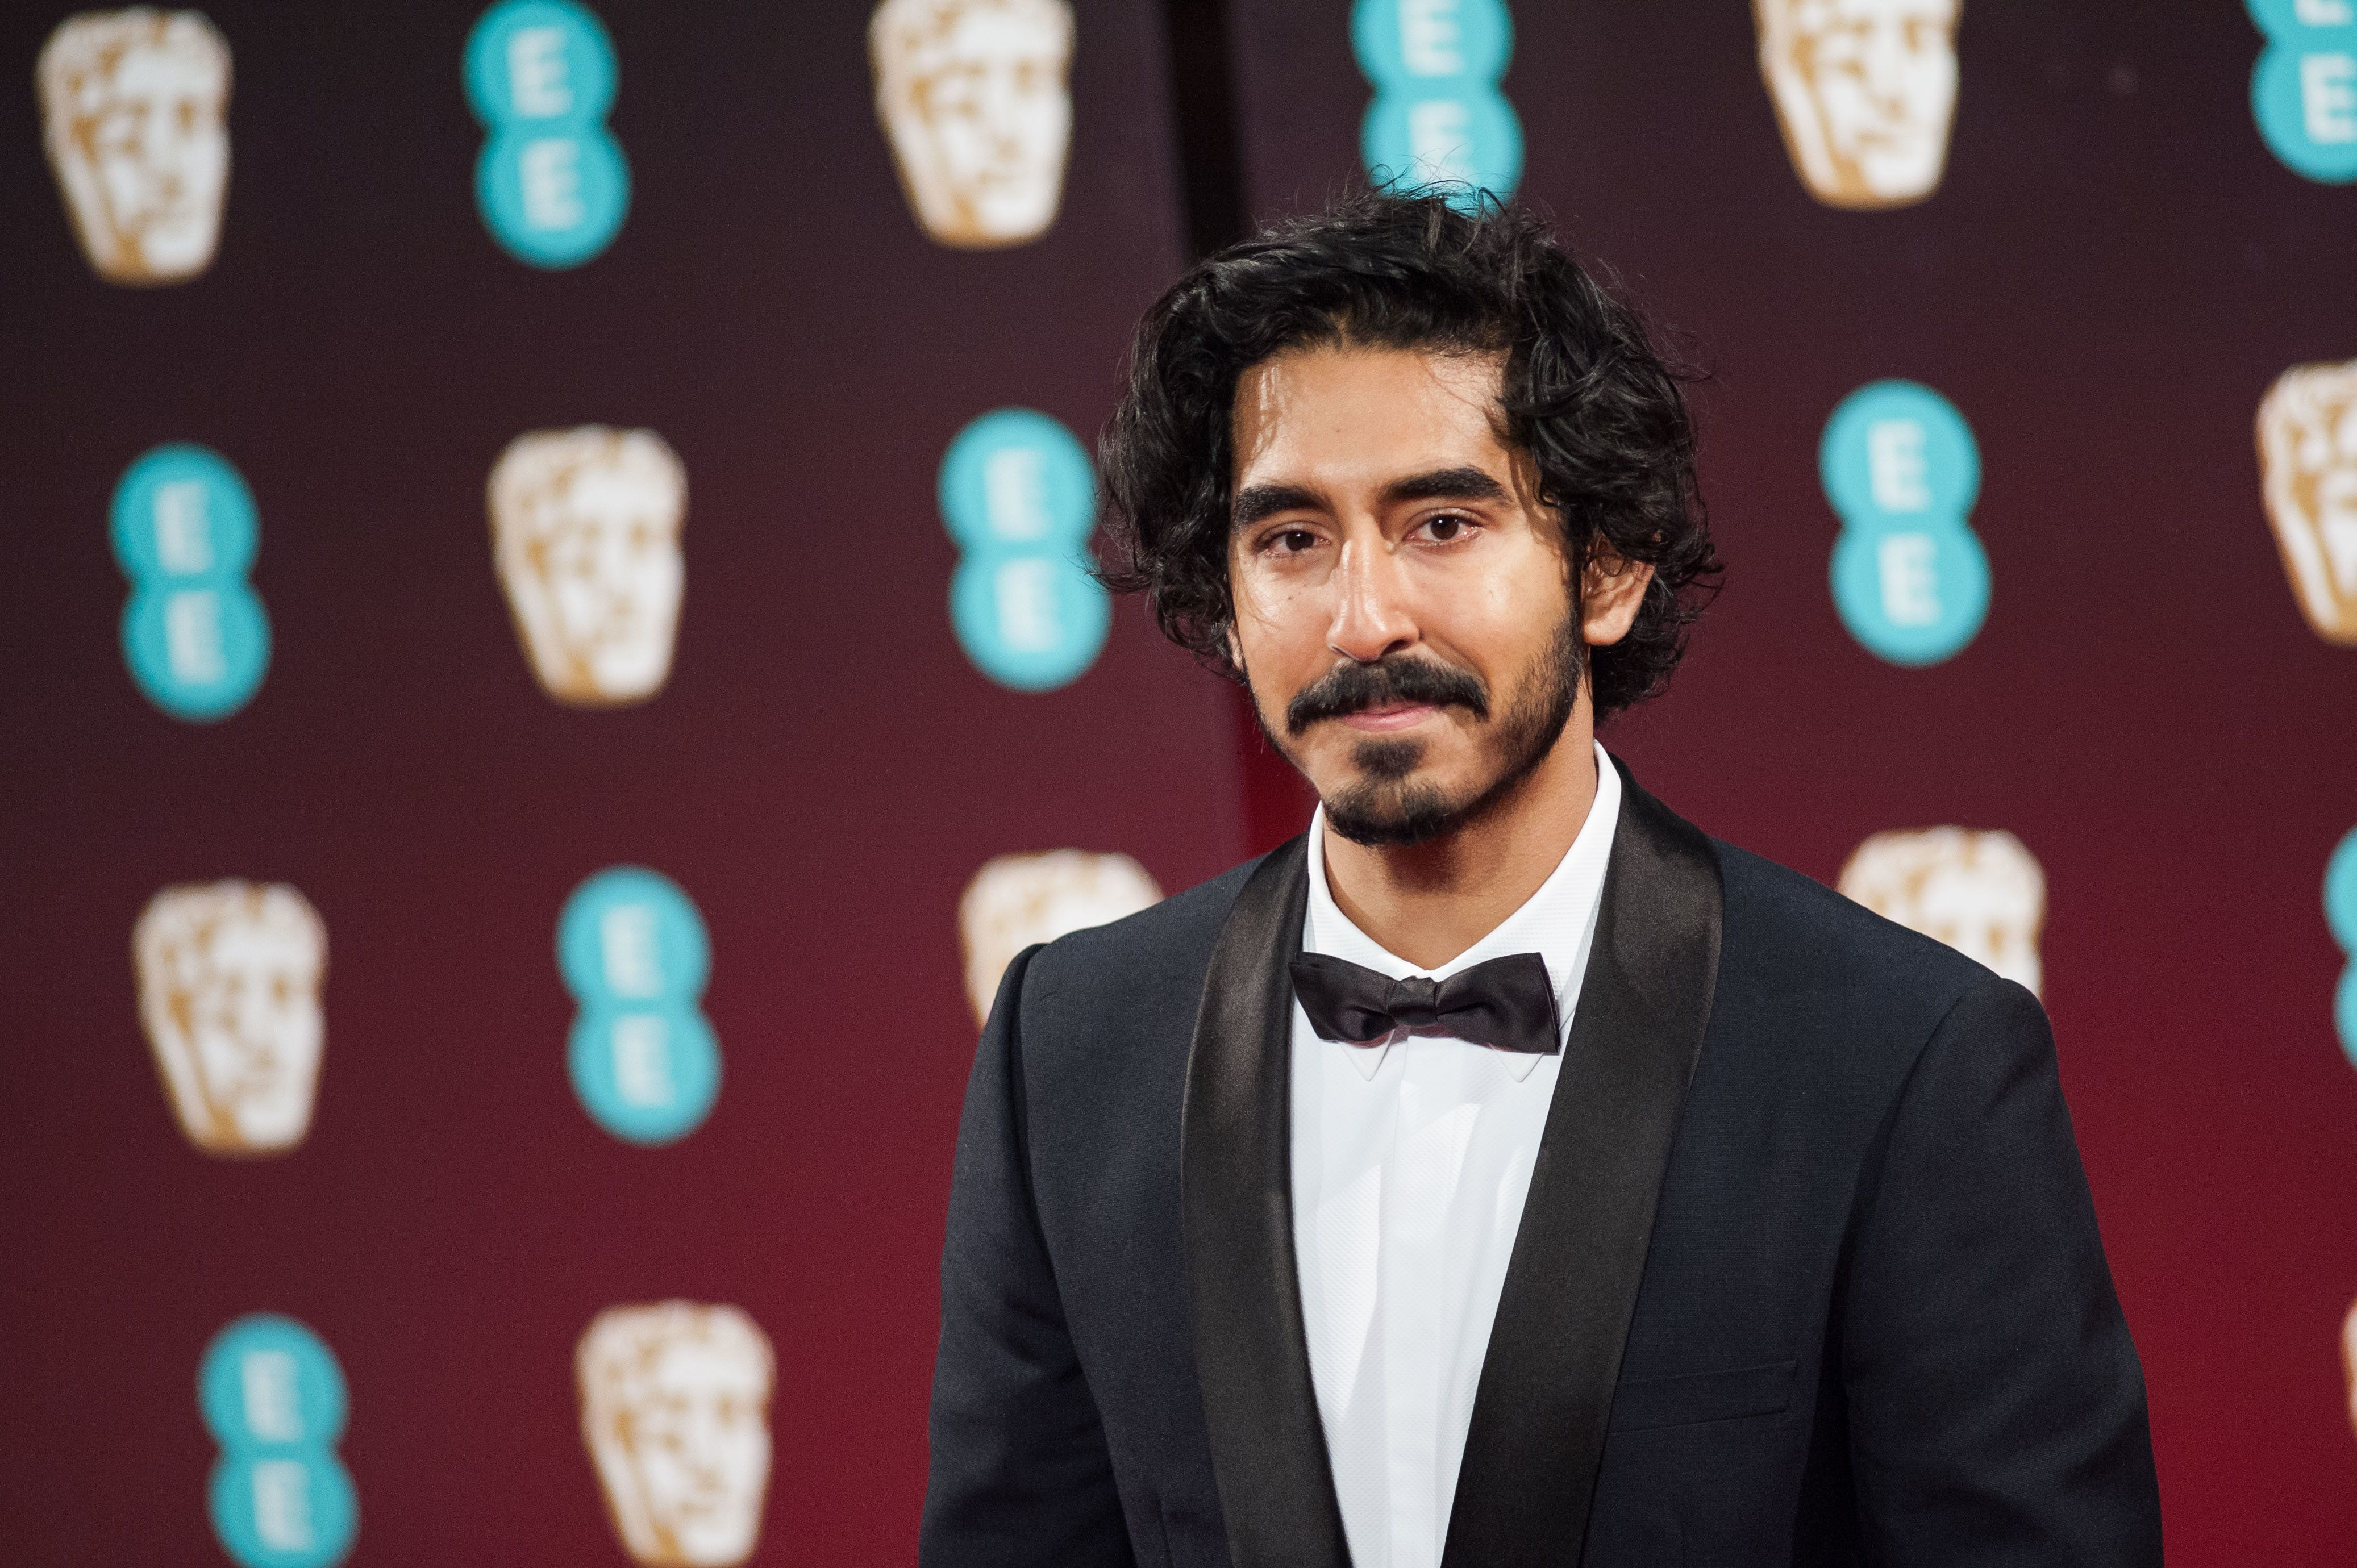 LONDON, UNITED KINGDOM - FEBRUARY 12: Dev Patel attends the 70th British Academy Film Awards (BAFTA) ceremony at the Royal Albert Hall on February 12, 2017 in London, England.  PHOTOGRAPH BY Wiktor Szymanowicz / Barcroft Images  London-T:+44 207 033 1031 E:hello@barcroftmedia.com - New York-T:+1 212 796 2458 E:hello@barcroftusa.com - New Delhi-T:+91 11 4053 2429 E:hello@barcroftindia.com www.barcroftimages.com (Photo credit should read Wiktor Szymanowicz / Barcroft Im / Barcroft Media via Getty Images)